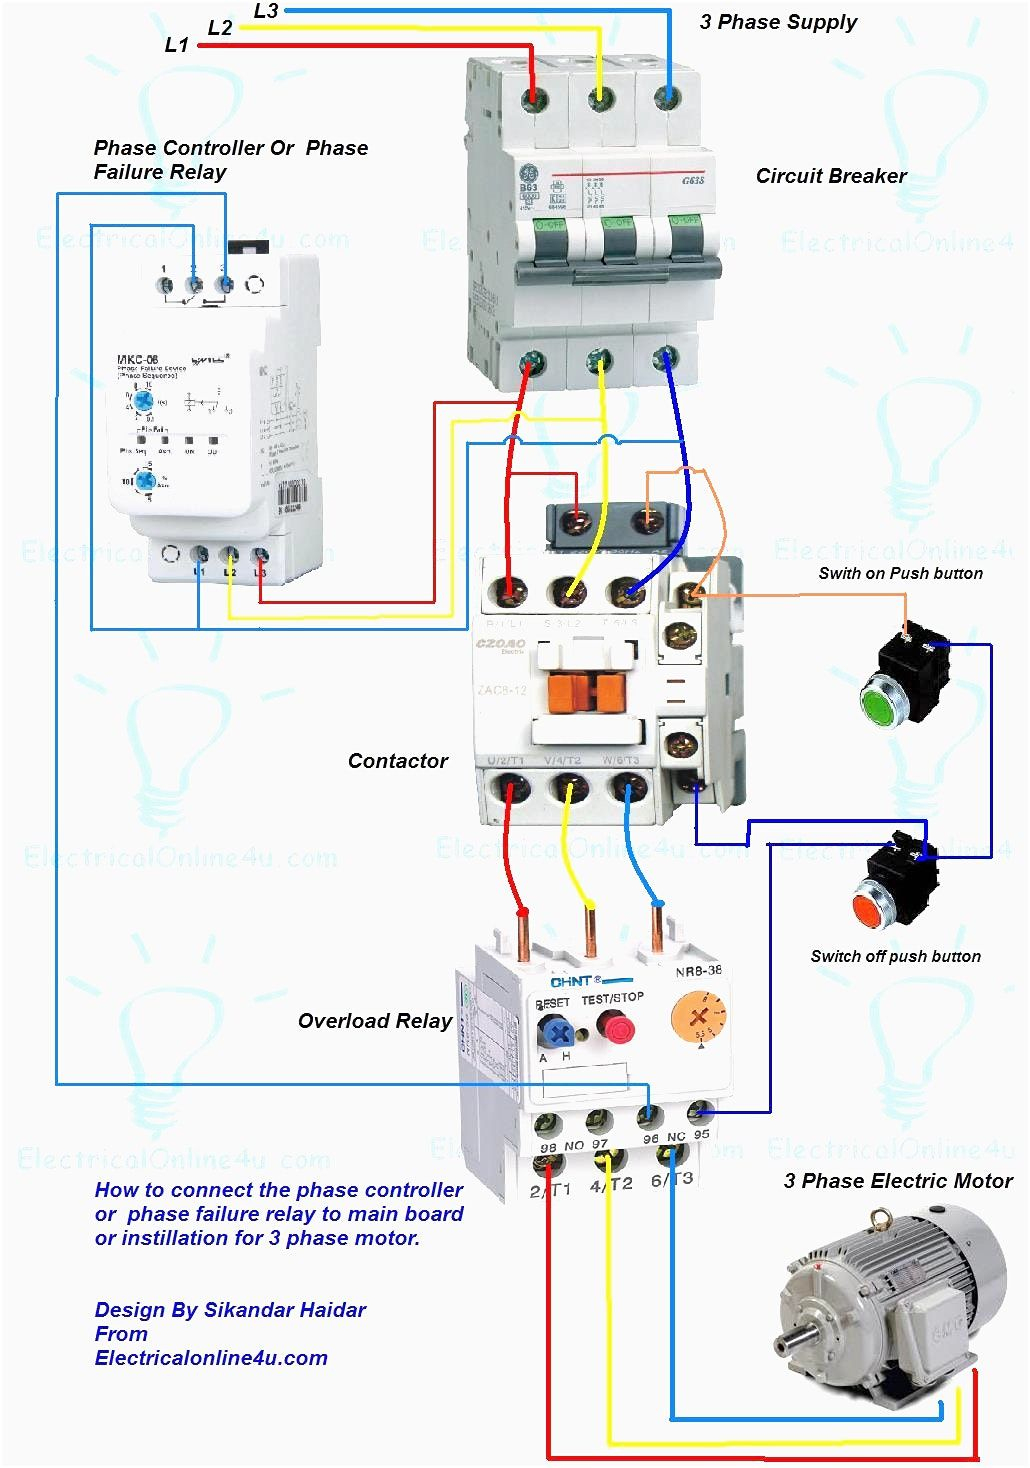 Wiring Diagram For Motor Starter 3 Phase Controller Failure Relay - Three Phase Motor Wiring Diagram